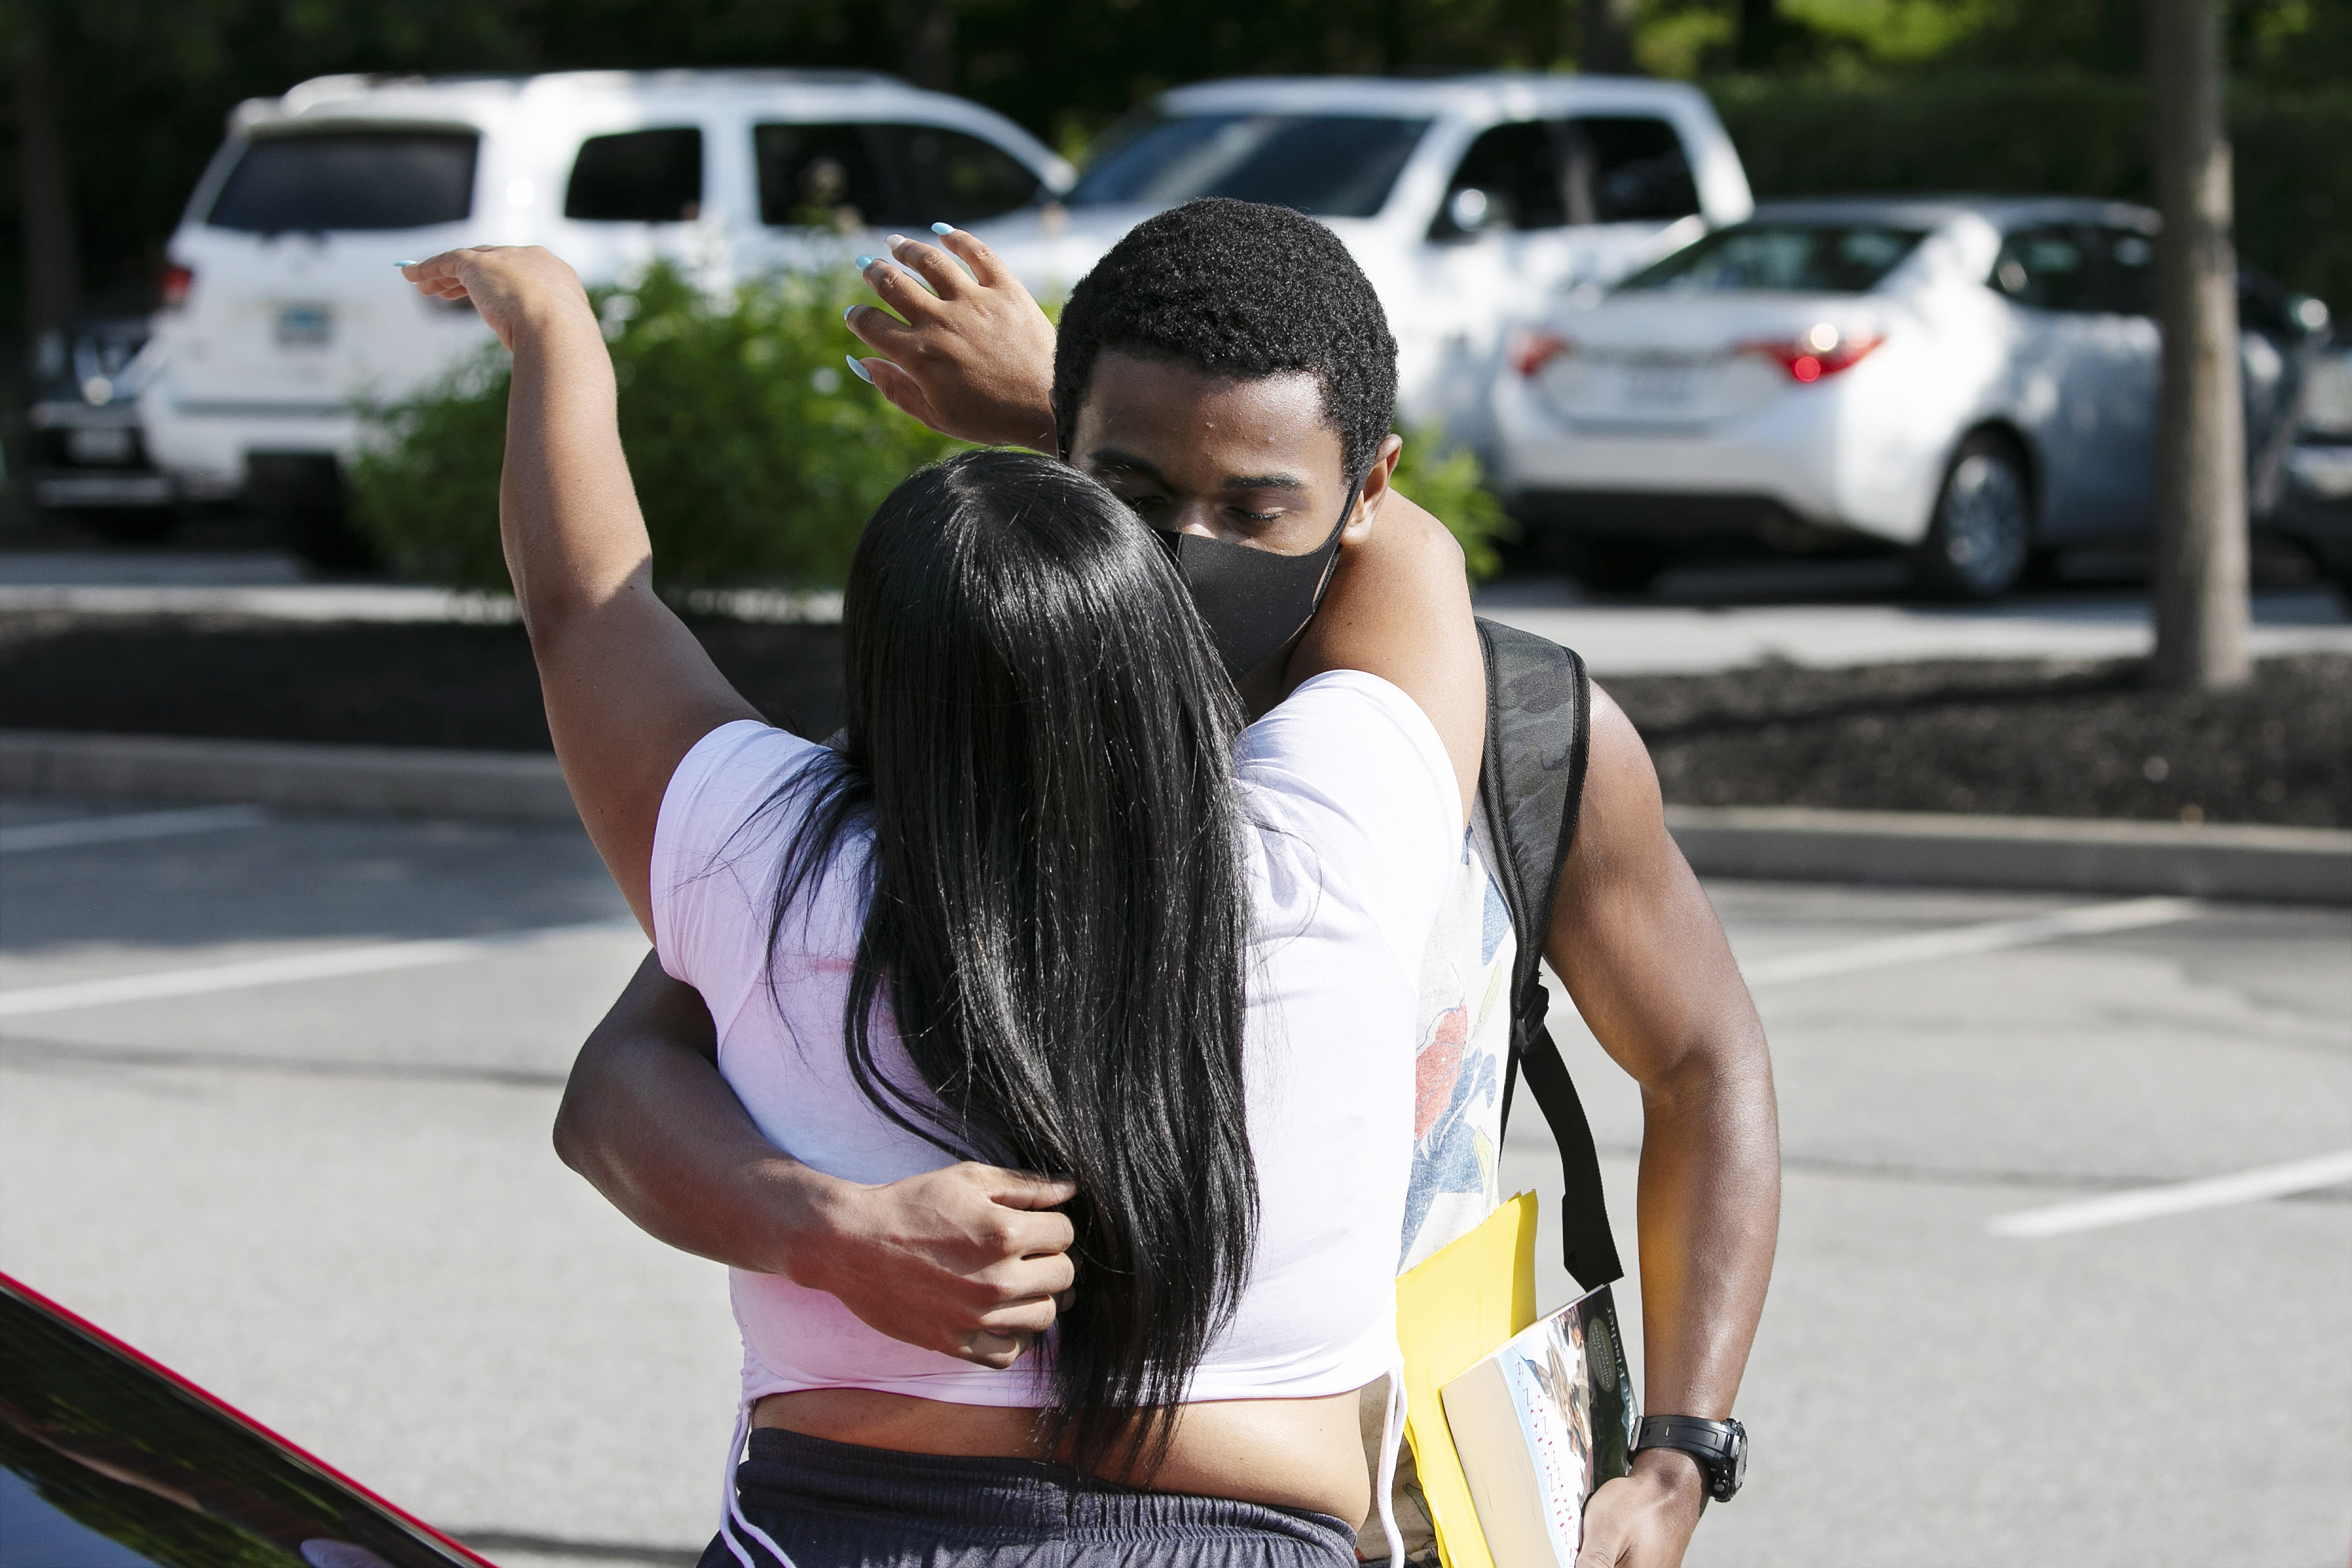 Cadet candidate Walter Thomas Pack, Jr., of Philadelphia, gets a goodbye hug from his mother Kathy as she drops him off at the U.S. Military Academy, Monday, July 13, 2020, in West Point, N.Y. The Army is welcoming more than 1,200 candidates from every state. Candidates will be COVID-19 tested immediately upon arrival, wear masks, and practice social distancing. (AP Photo/Mark Lennihan)